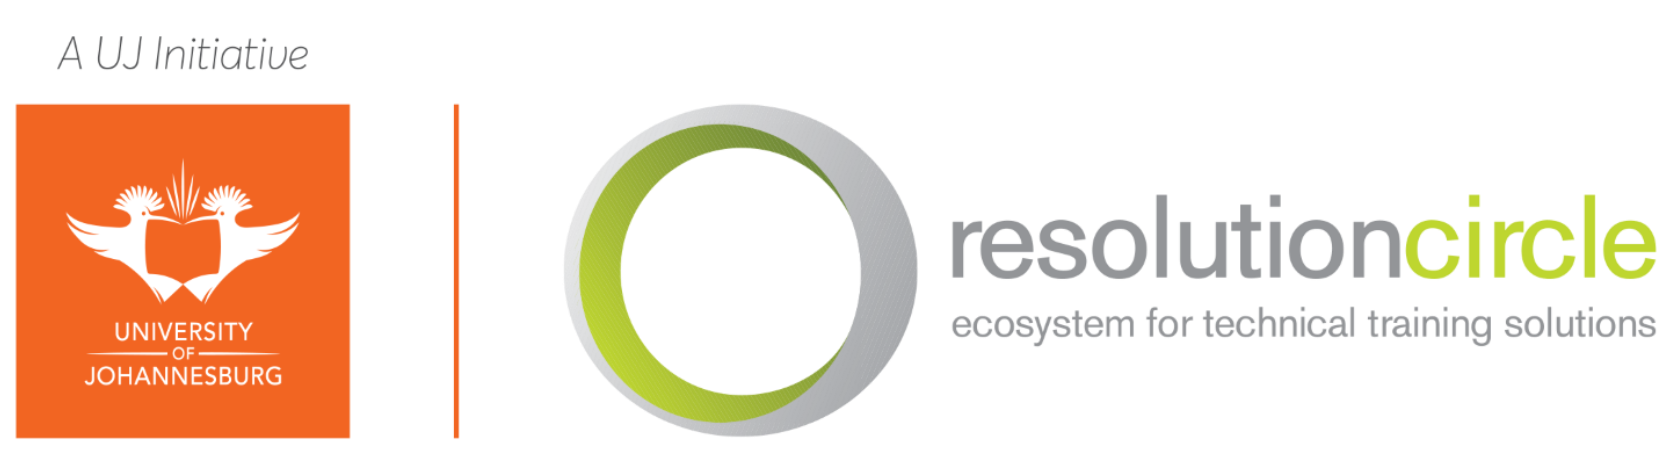 https://www.resolutioncircle.co.za